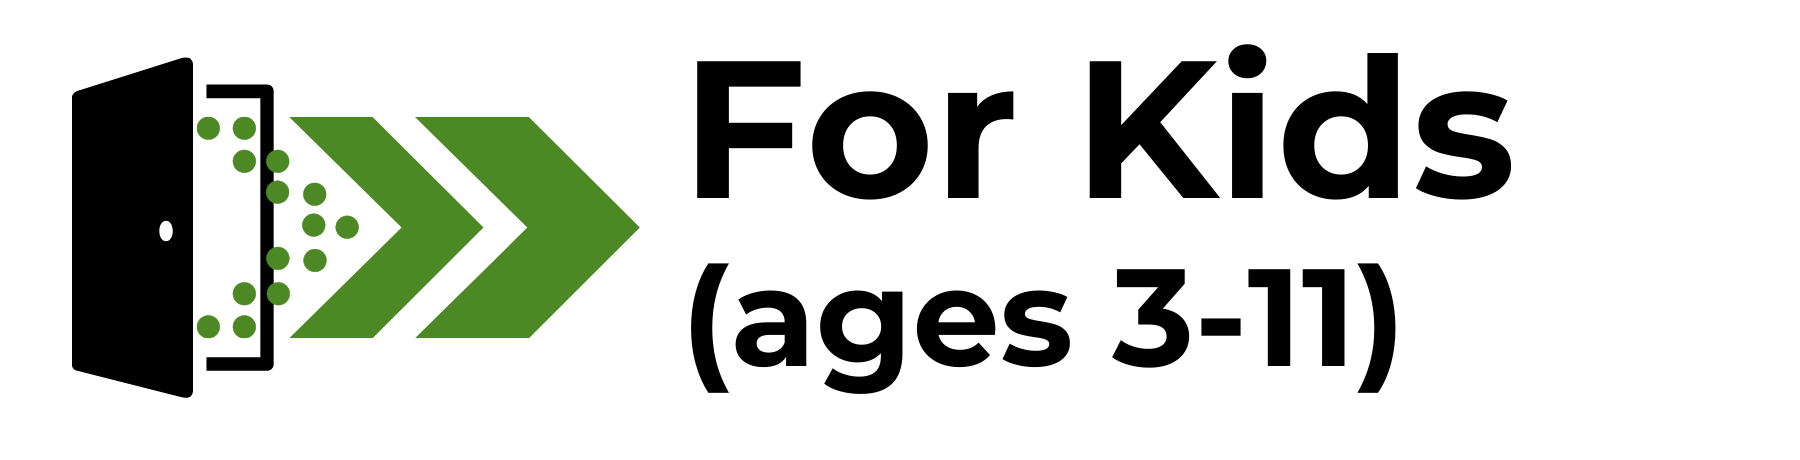 For Kids (ages 3-11)